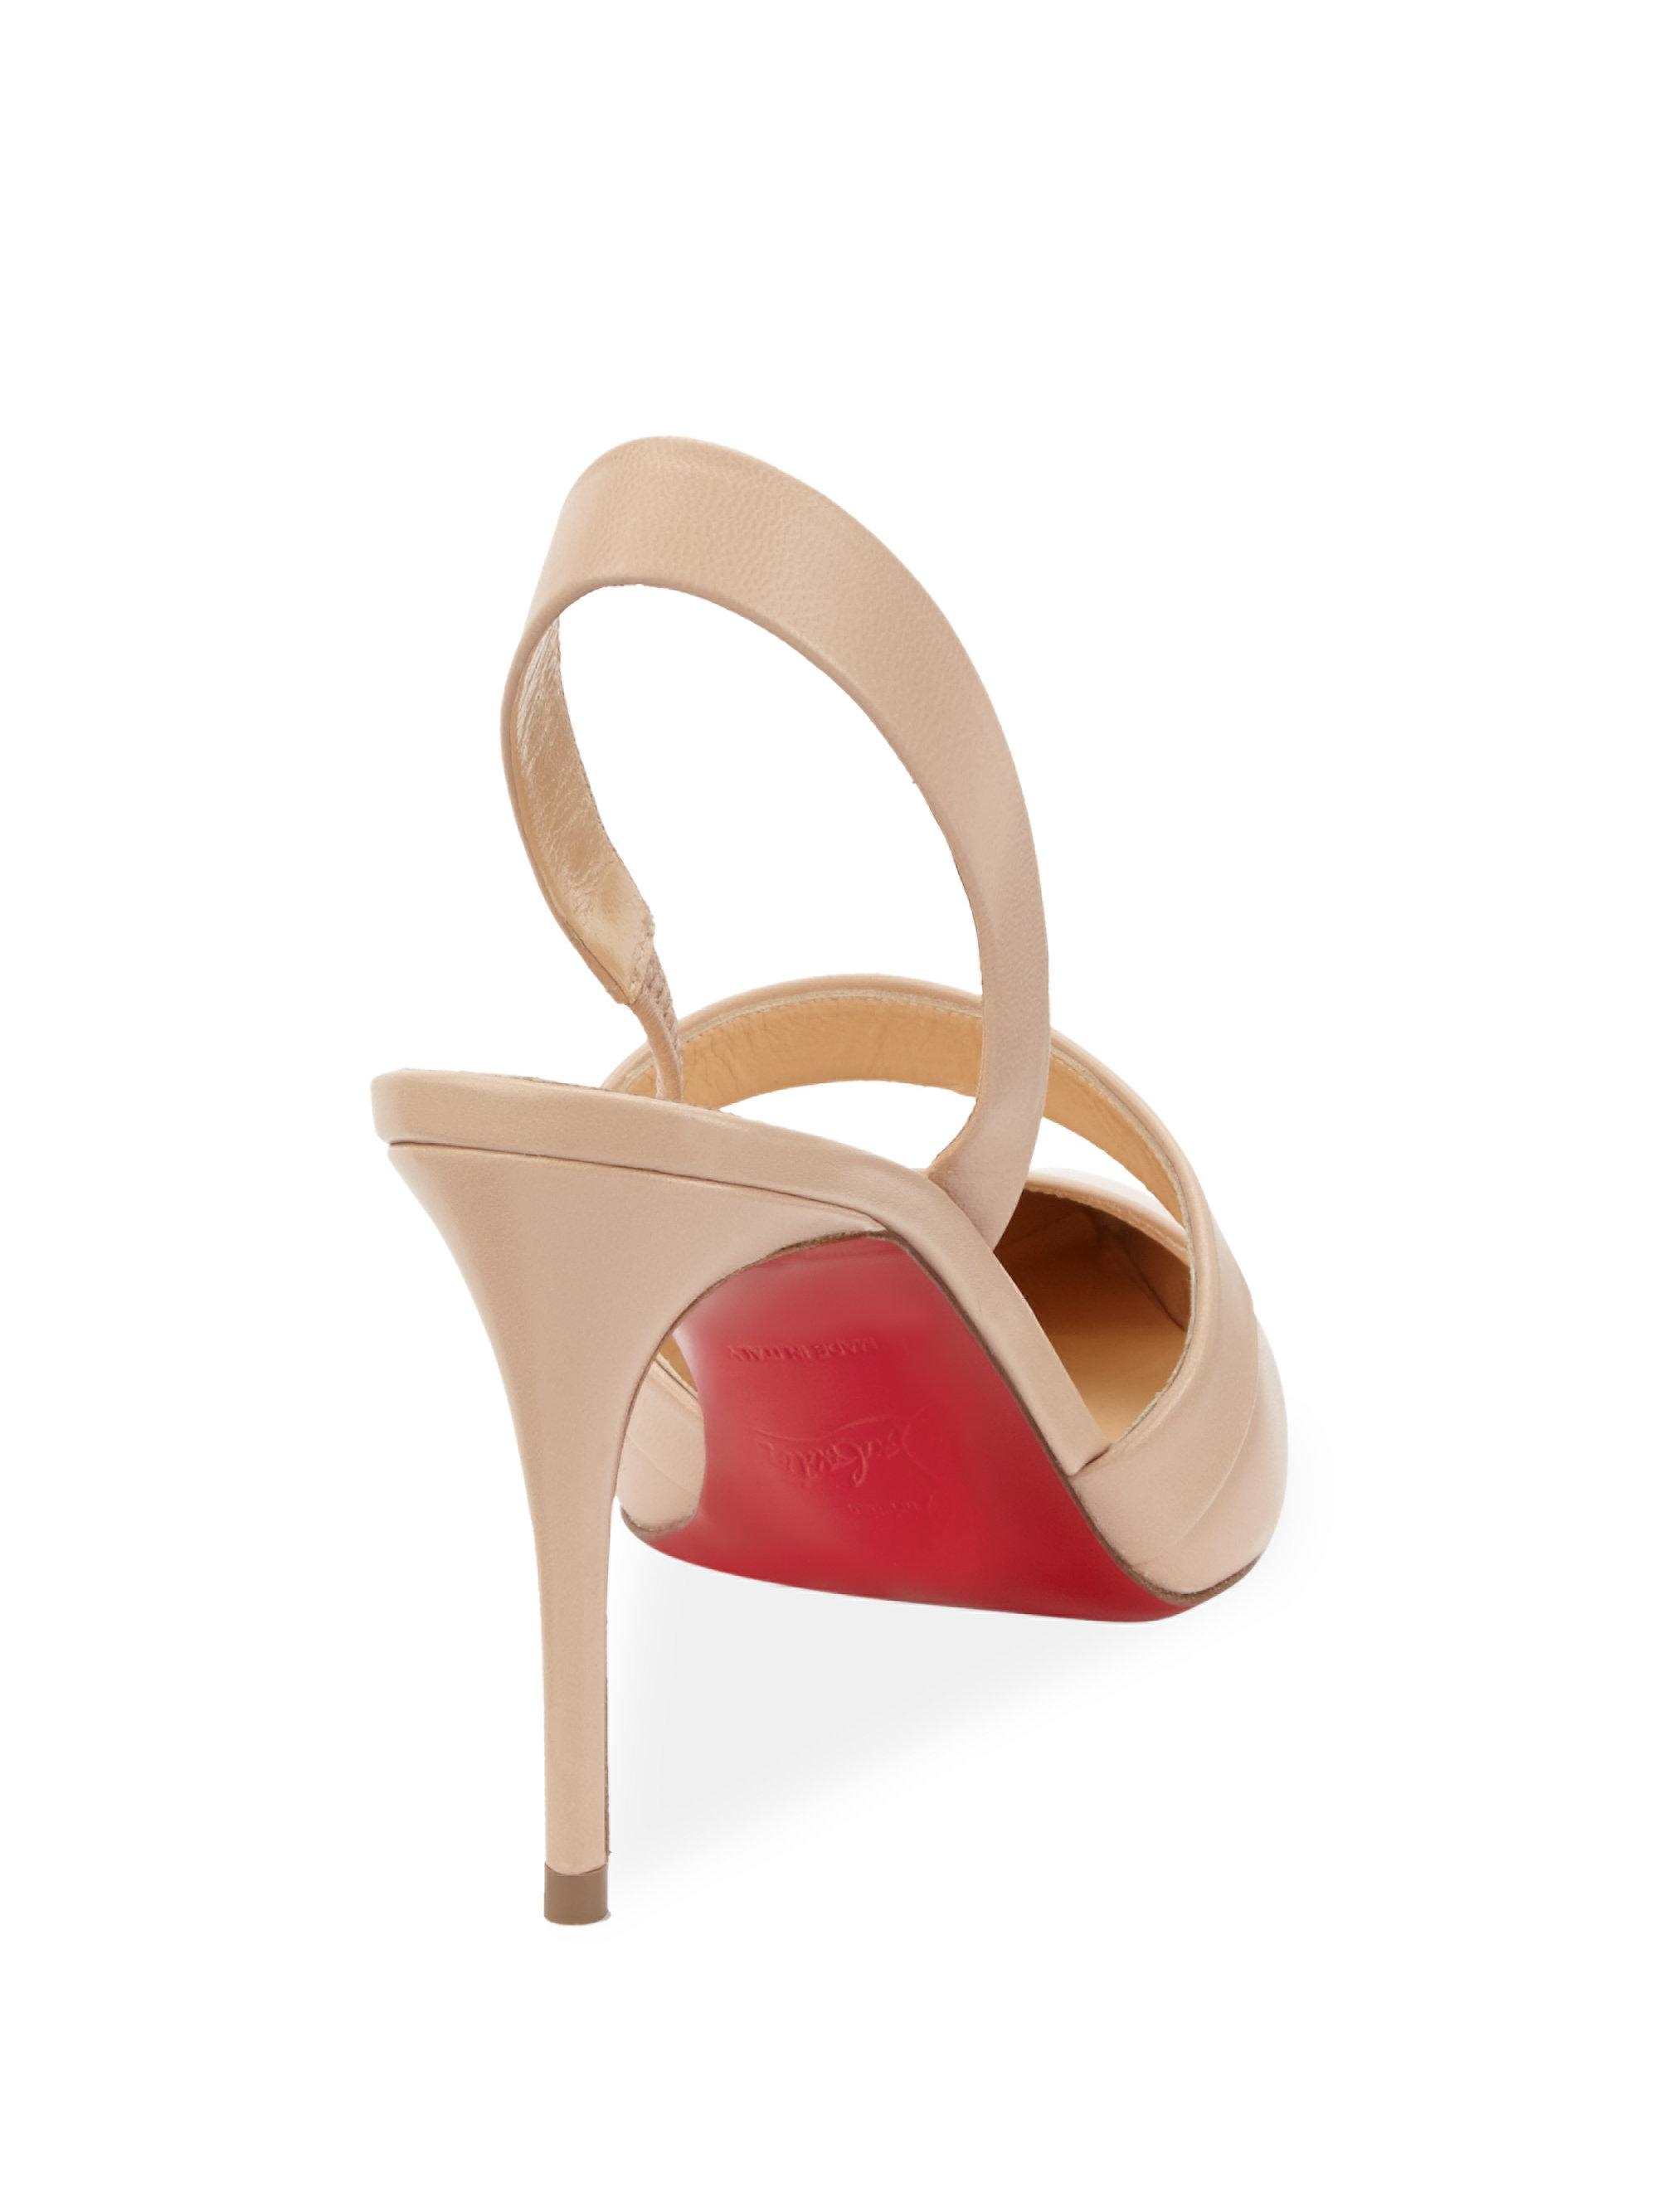 online store 301c7 625e2 Christian Louboutin Natural Actina 85 Nappa Leather Slingback Pumps